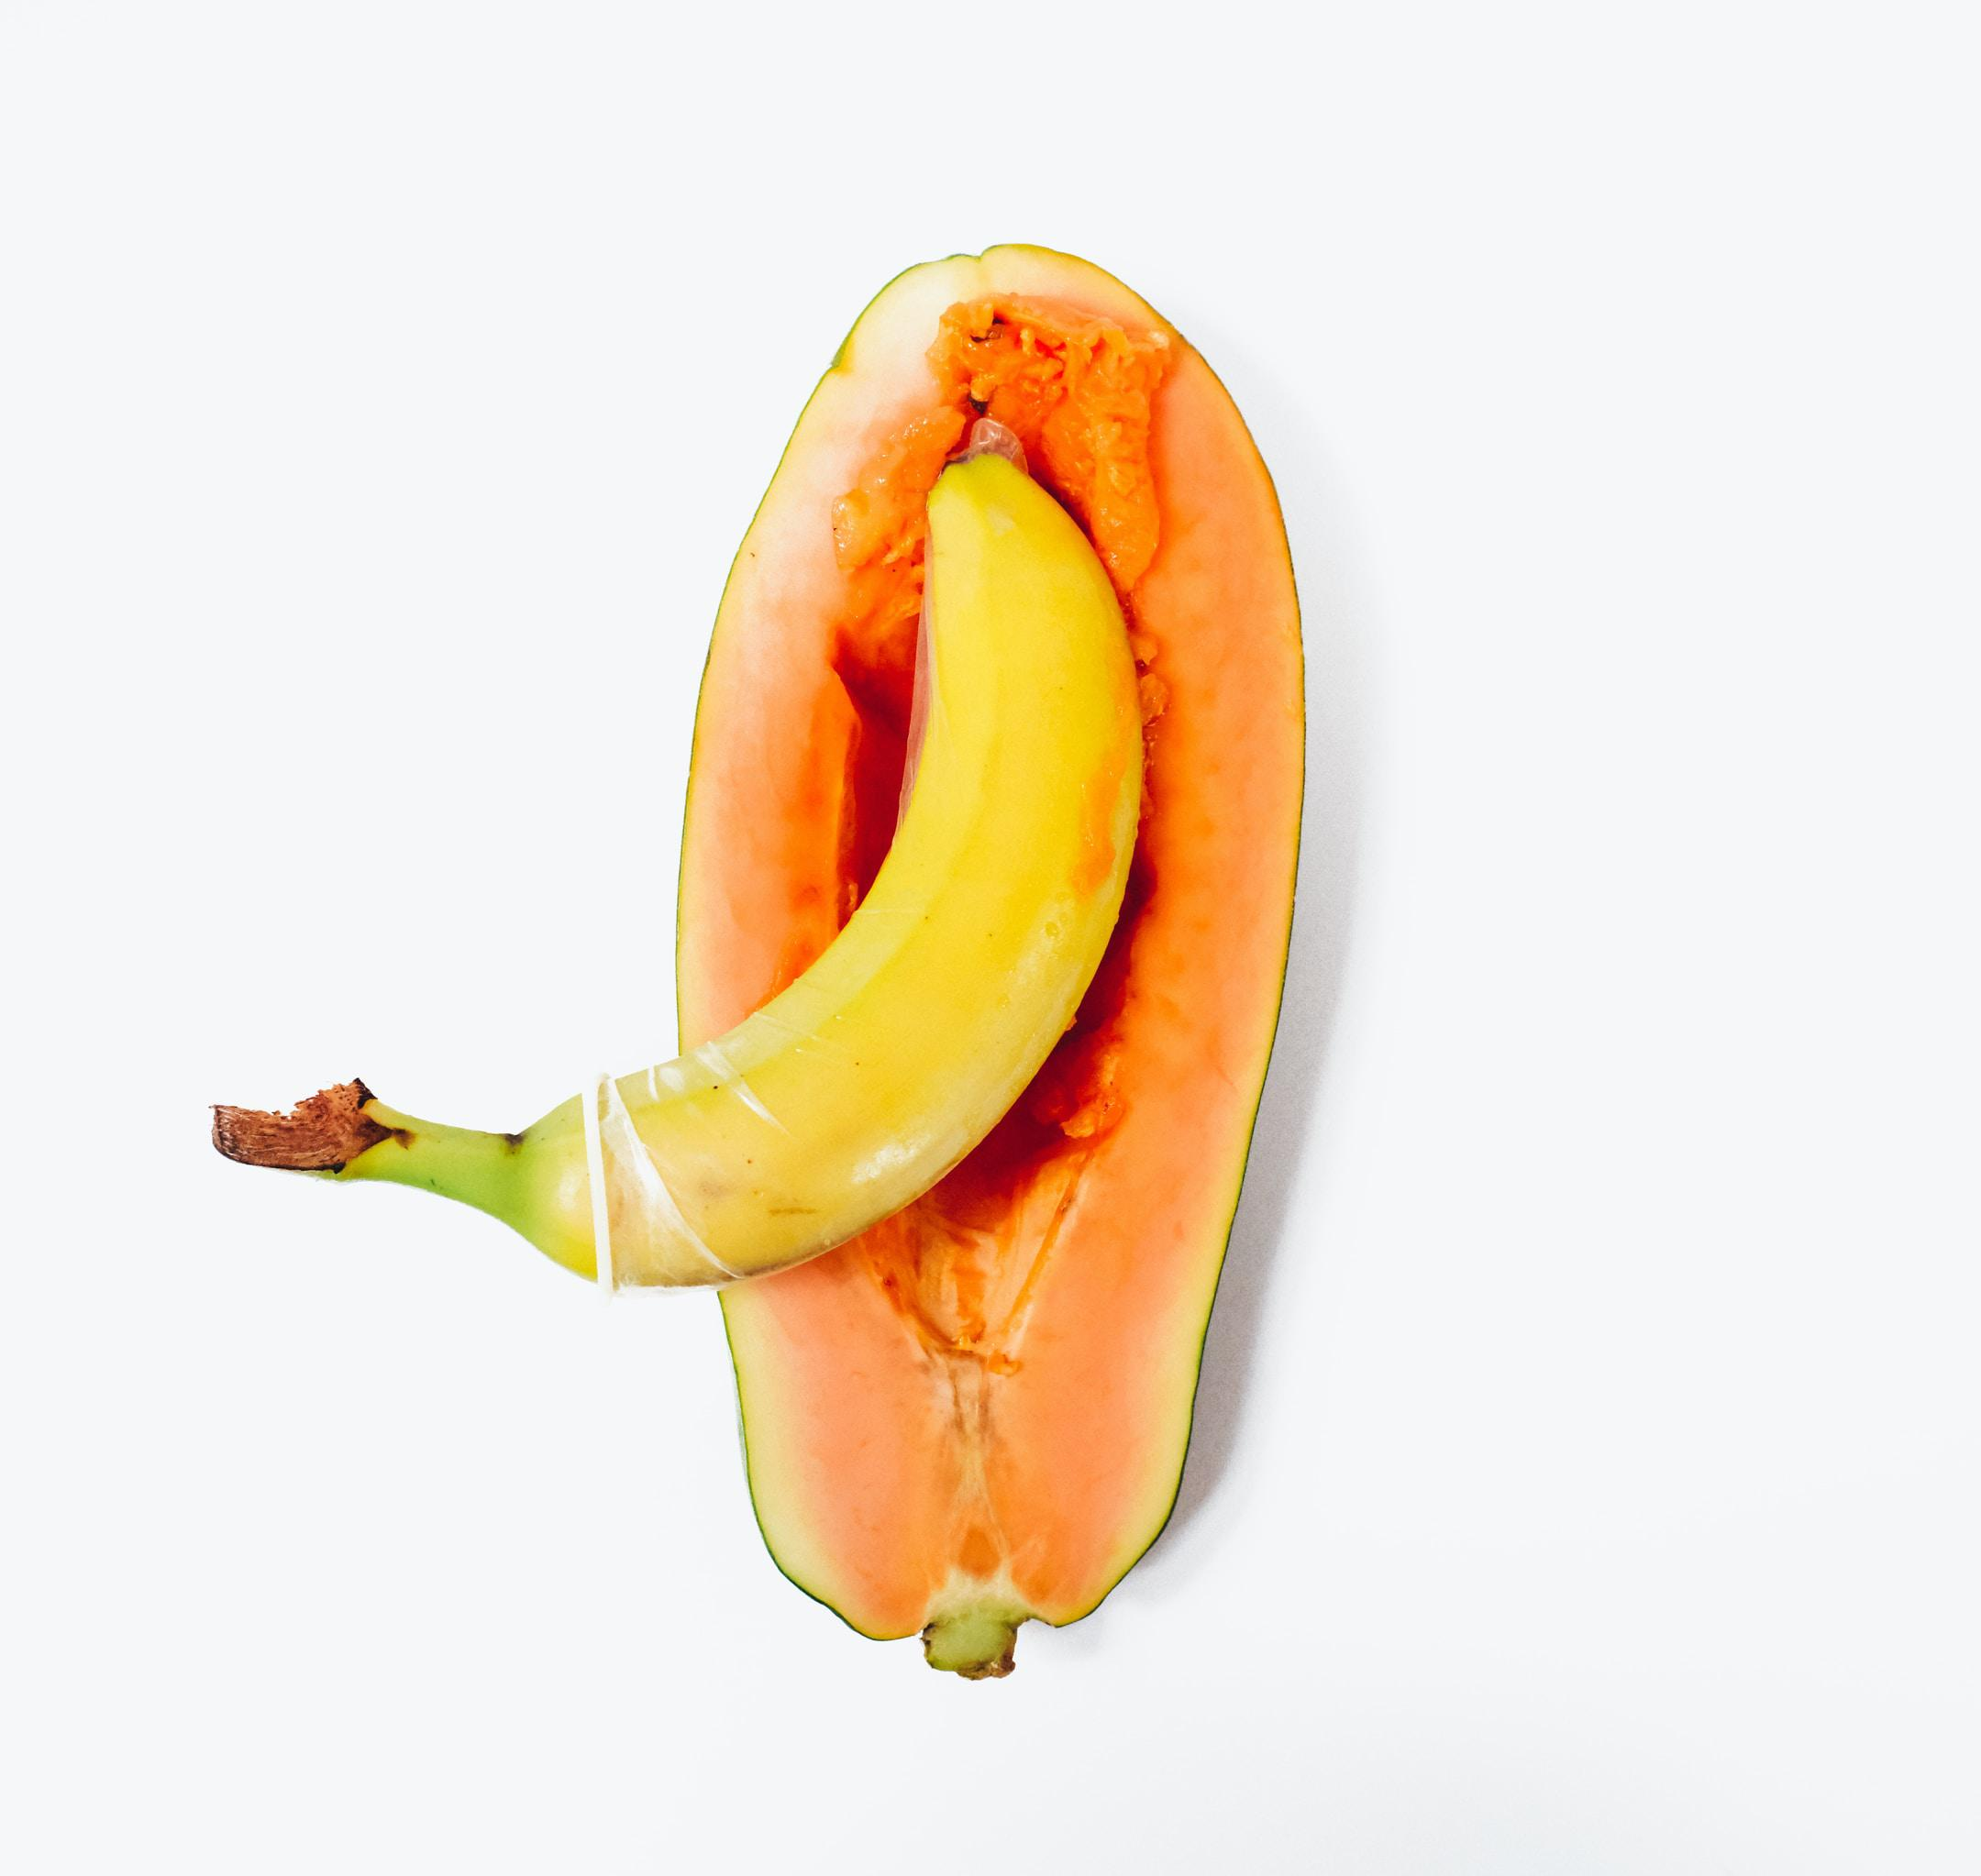 Sex Education: Banana and Papaya